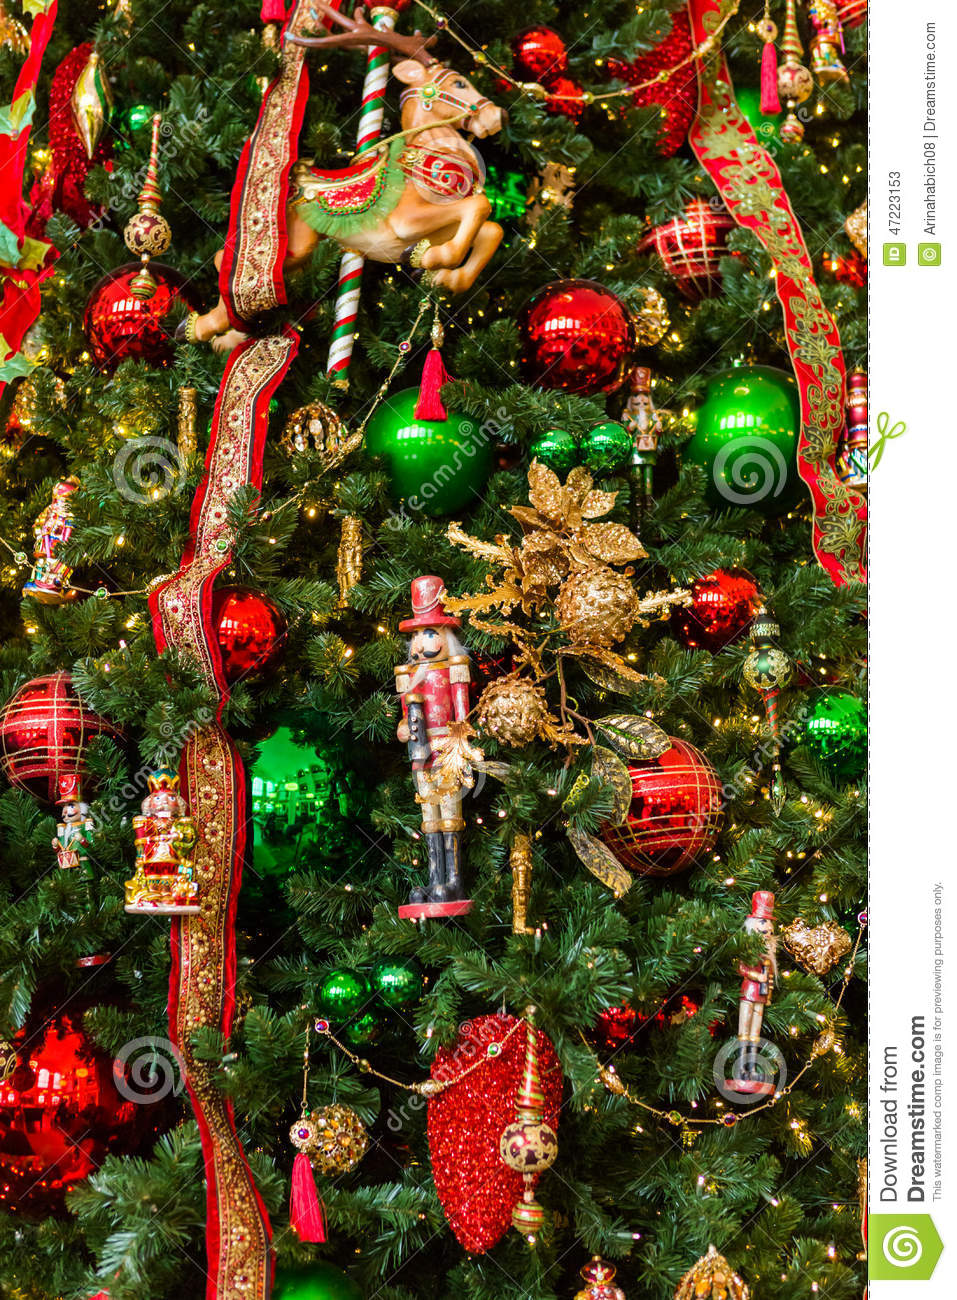 Christmas Tree Stock Photo Image 47223153: large decorated christmas trees